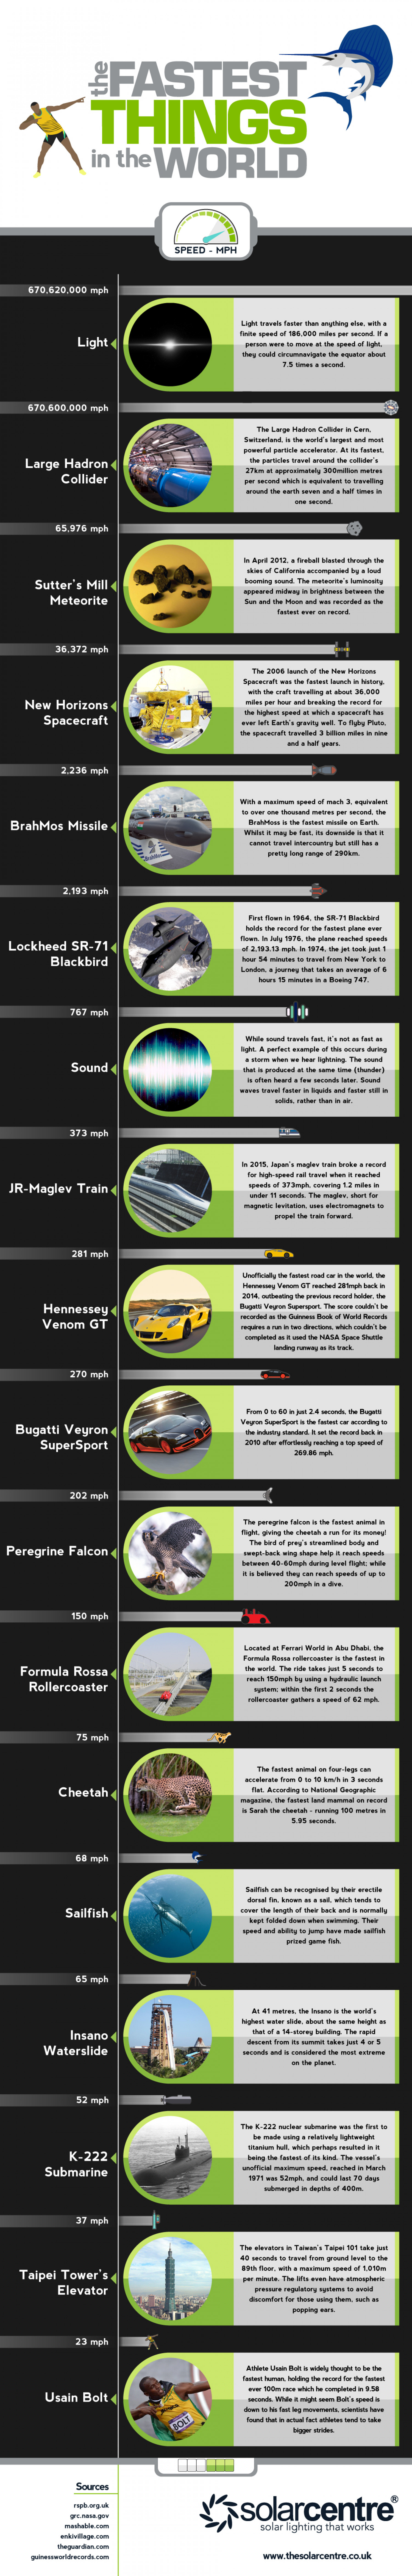 The Fastest Things in the World Infographic